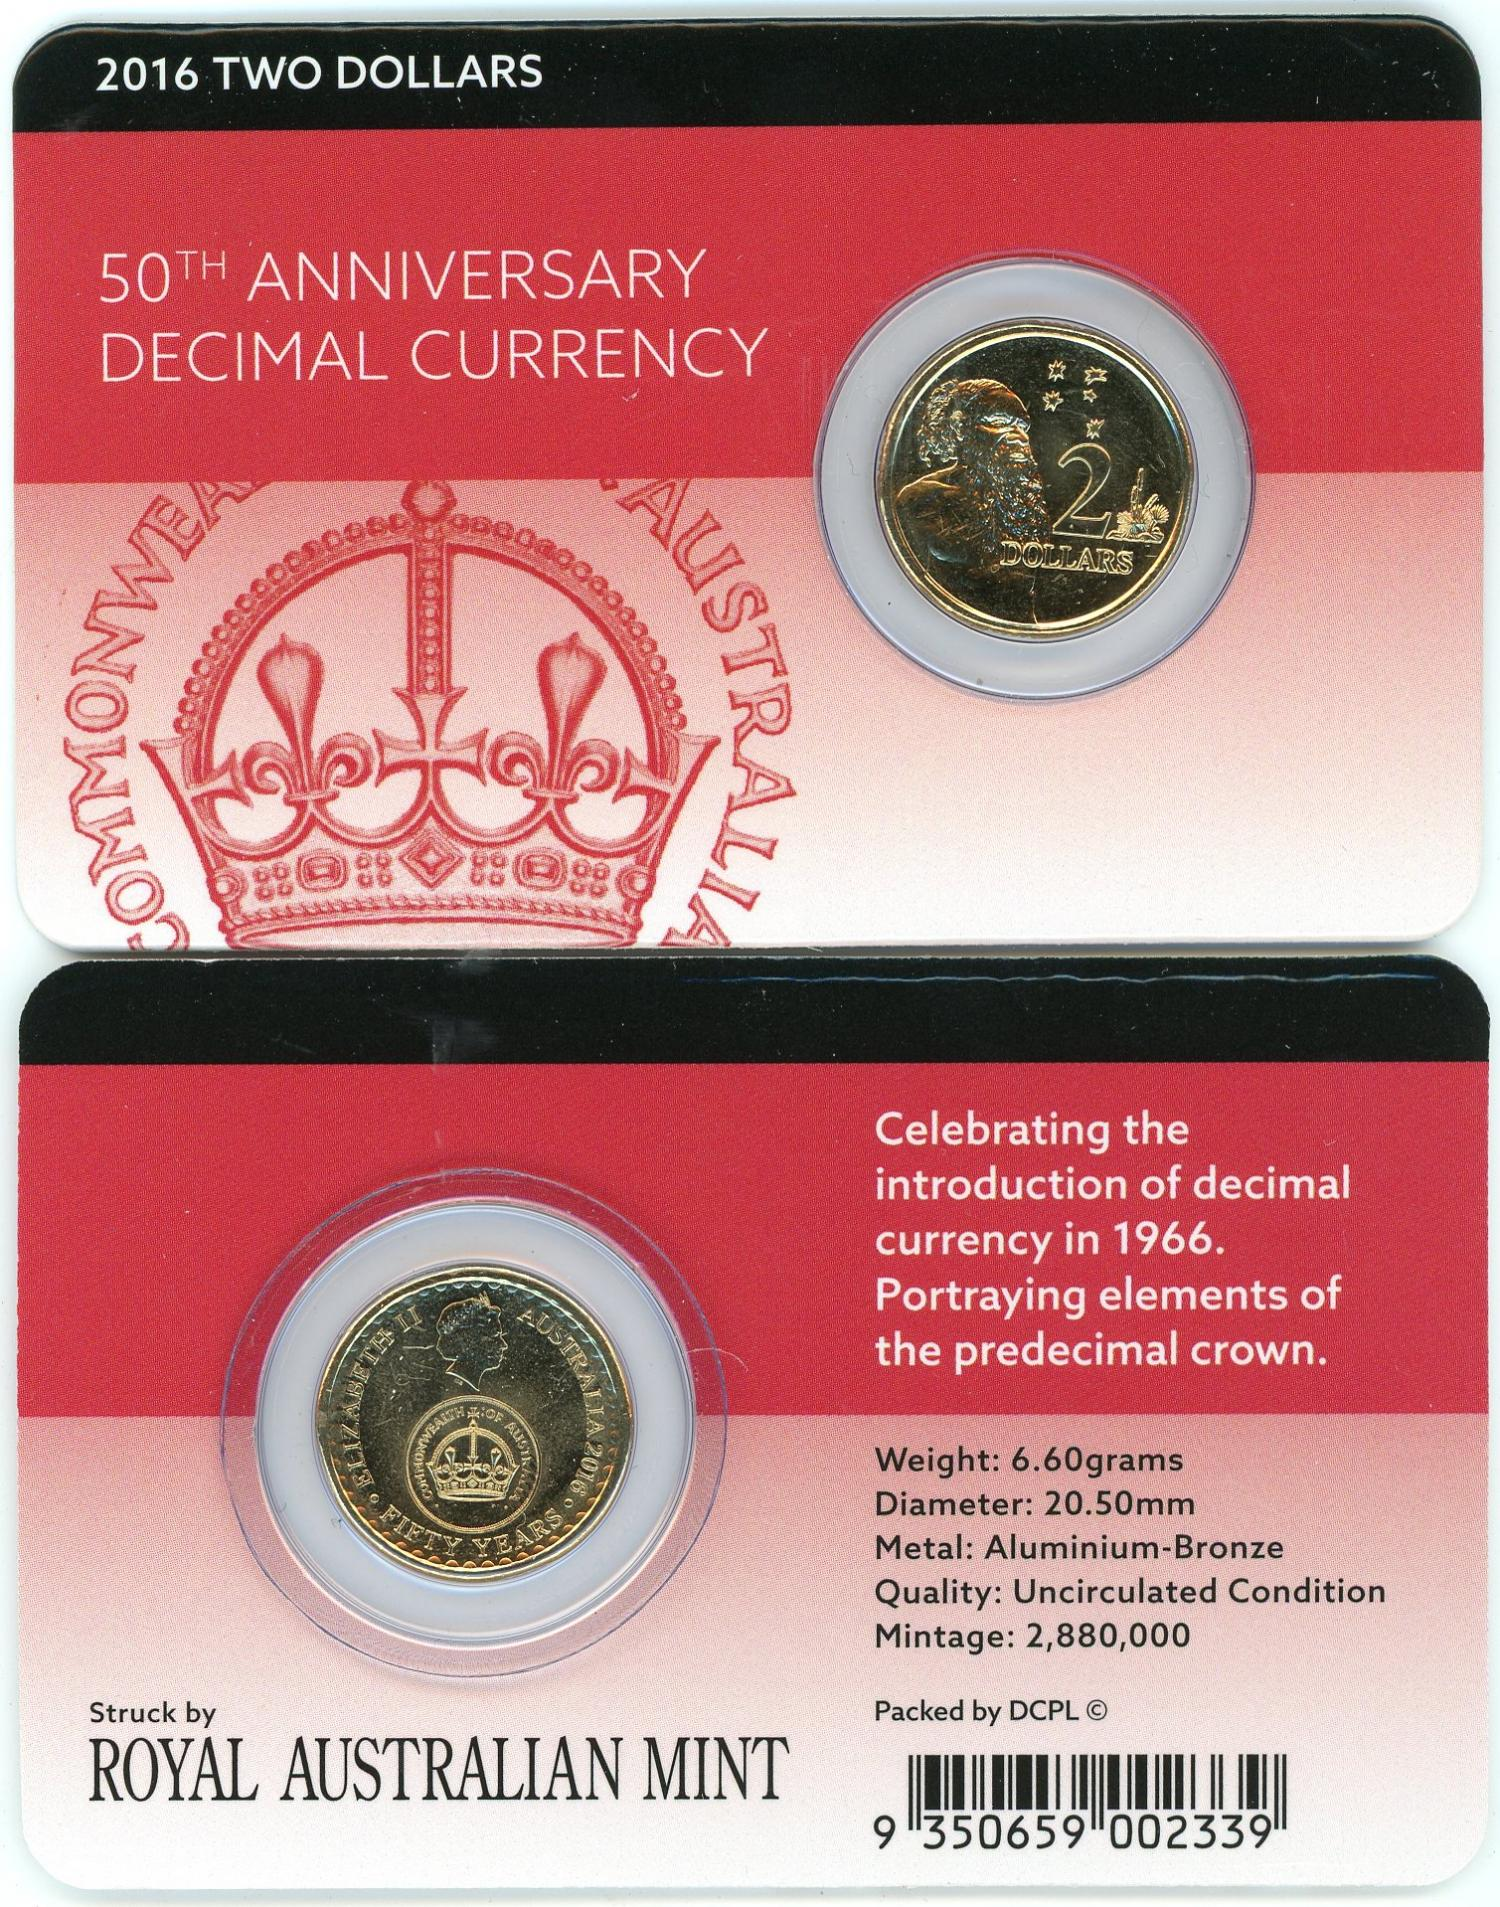 Thumbnail for 2016 $2 50th Anniversary of Decimal Currency DCPL Card